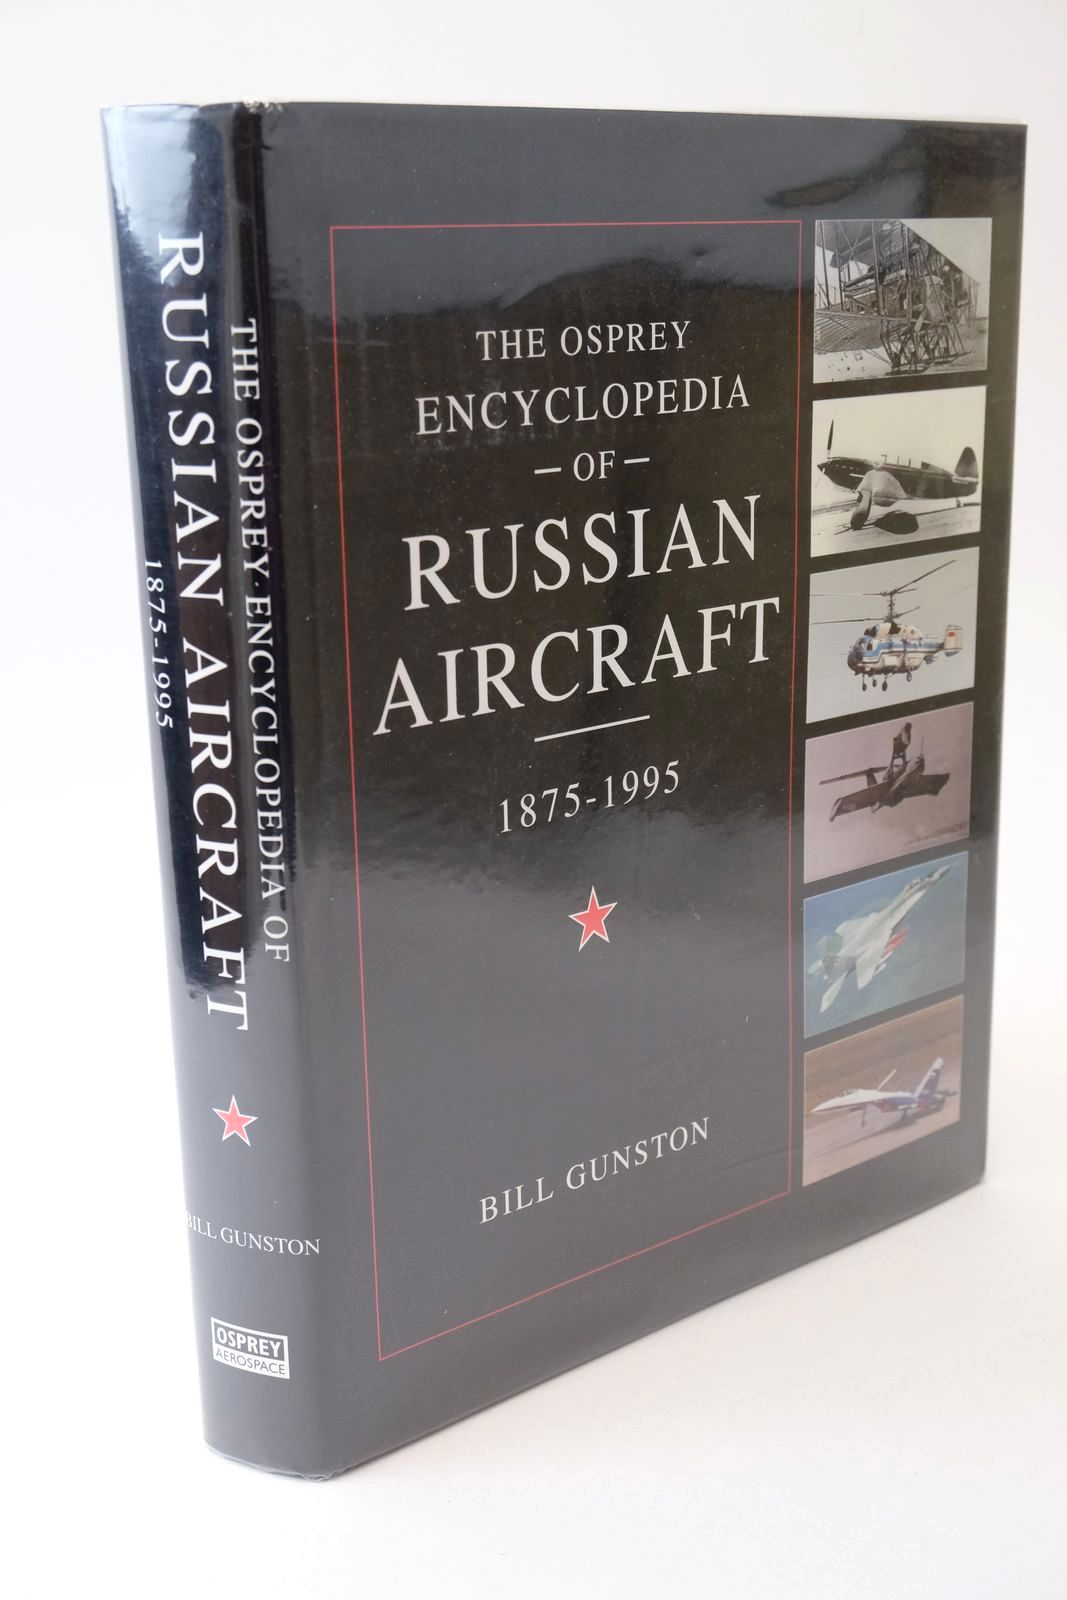 Photo of THE OSPREY ENCYCLOPEDIA OF RUSSIAN AIRCRAFT 1875-1995 written by Gunston, Bill published by Osprey Aerospace (STOCK CODE: 1318751)  for sale by Stella & Rose's Books